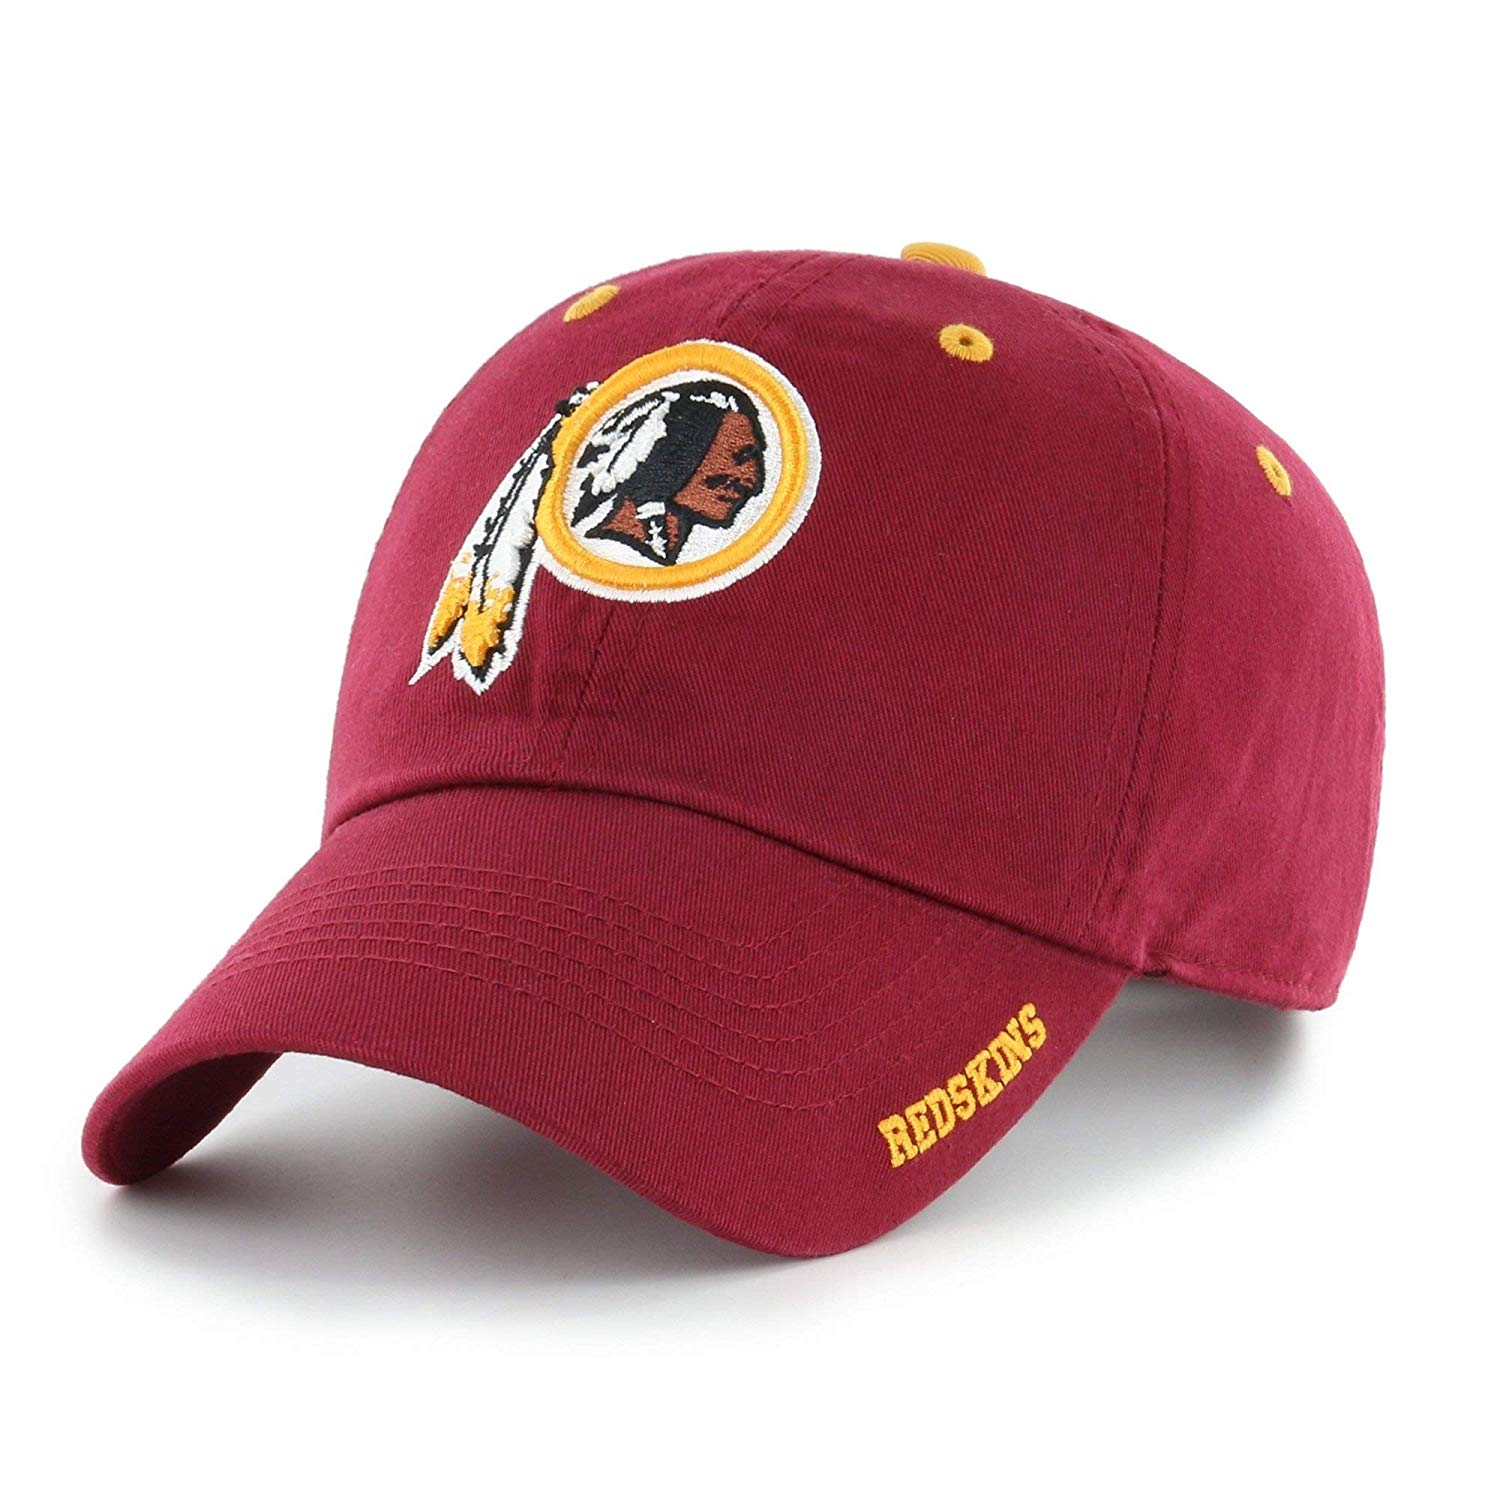 Red NFL Washington Redskins Hat Sports Football Baseball Cap Embroidered Team Logo Athletic Games Adjustable Cap/ Hat Boys Kids Unisex Fan Gift